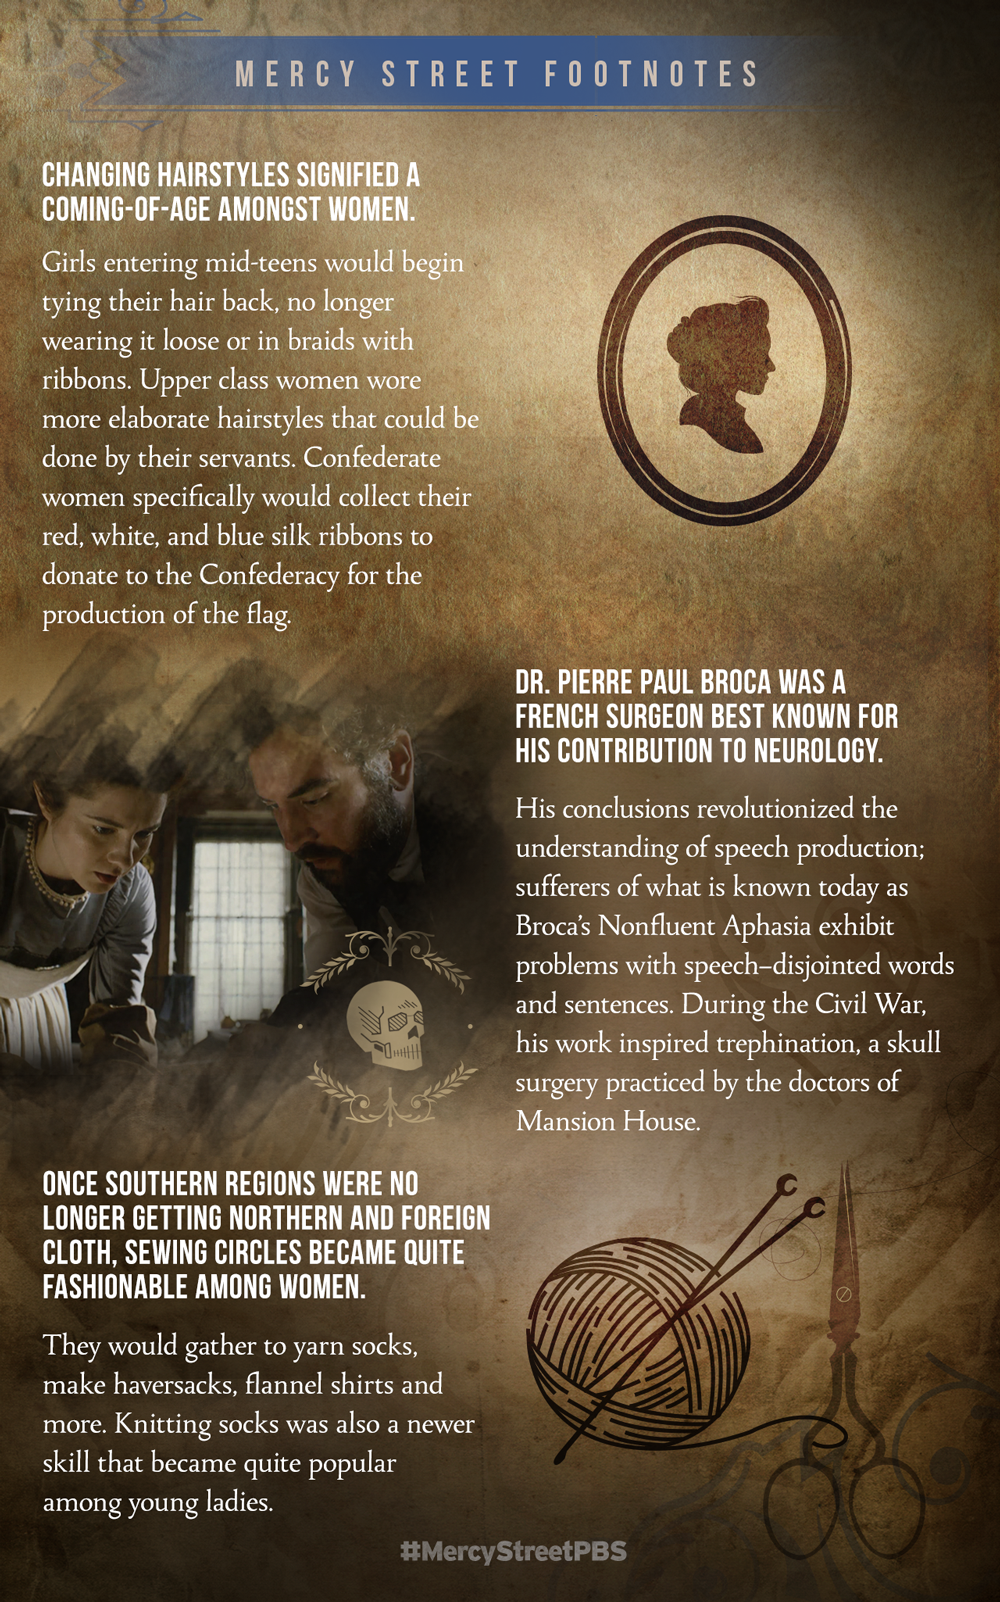 ms_ep2_infographic_poster_1000x1602-ver2-r02-skull2 (1).png